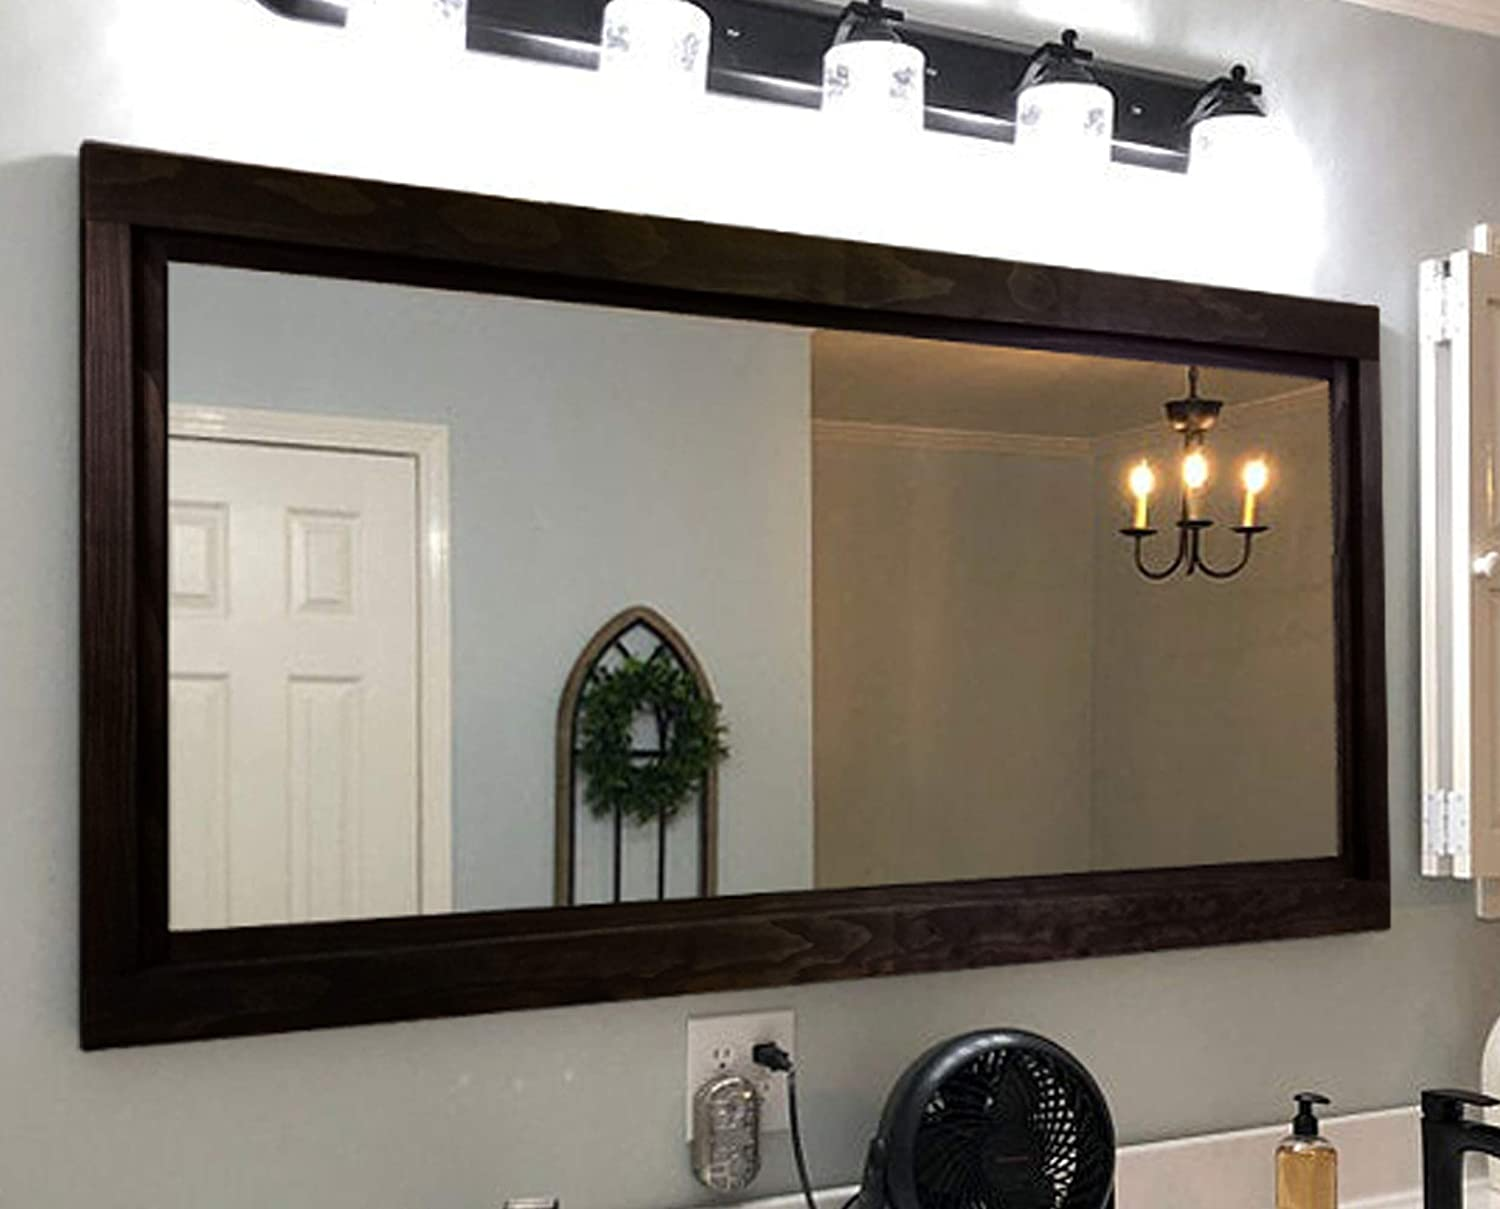 Farmhouse Framed Wall Mirror, 20 Stain Colors - Vanity Mirror, Rustic Home Decor, Double Vanity Mirror, Over Sink Mirror Wall Mount, Black Frame, Bathroom Mirror, Large Mirror